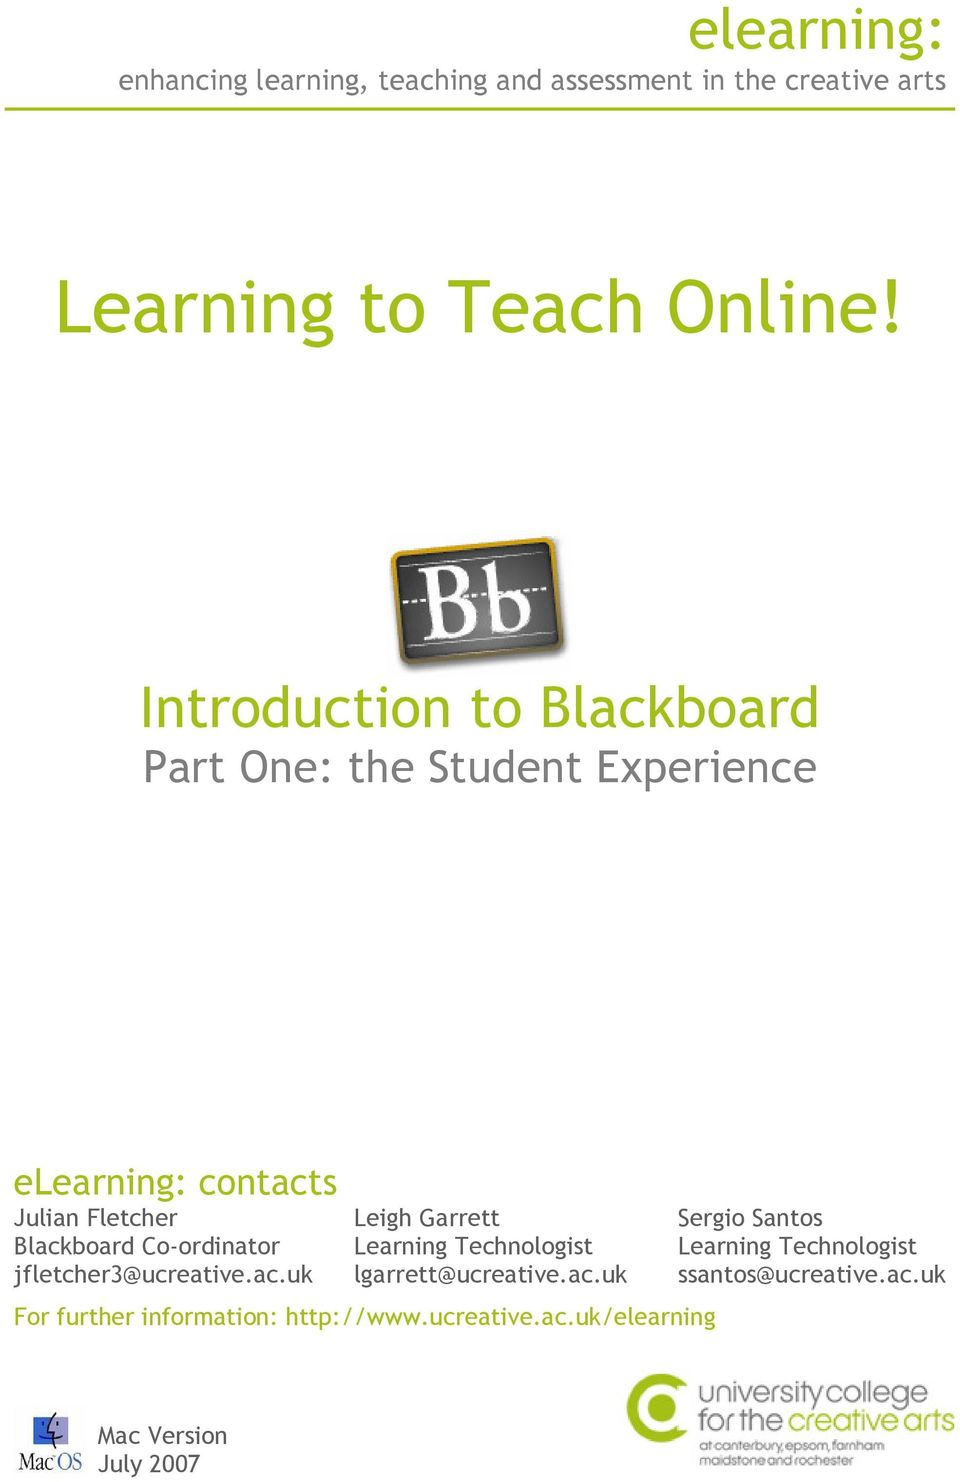 Sergio Santos Blackboard Co-ordinator Learning Technologist Learning Technologist jfletcher3@ucreative.ac.uk lgarrett@ucreative.